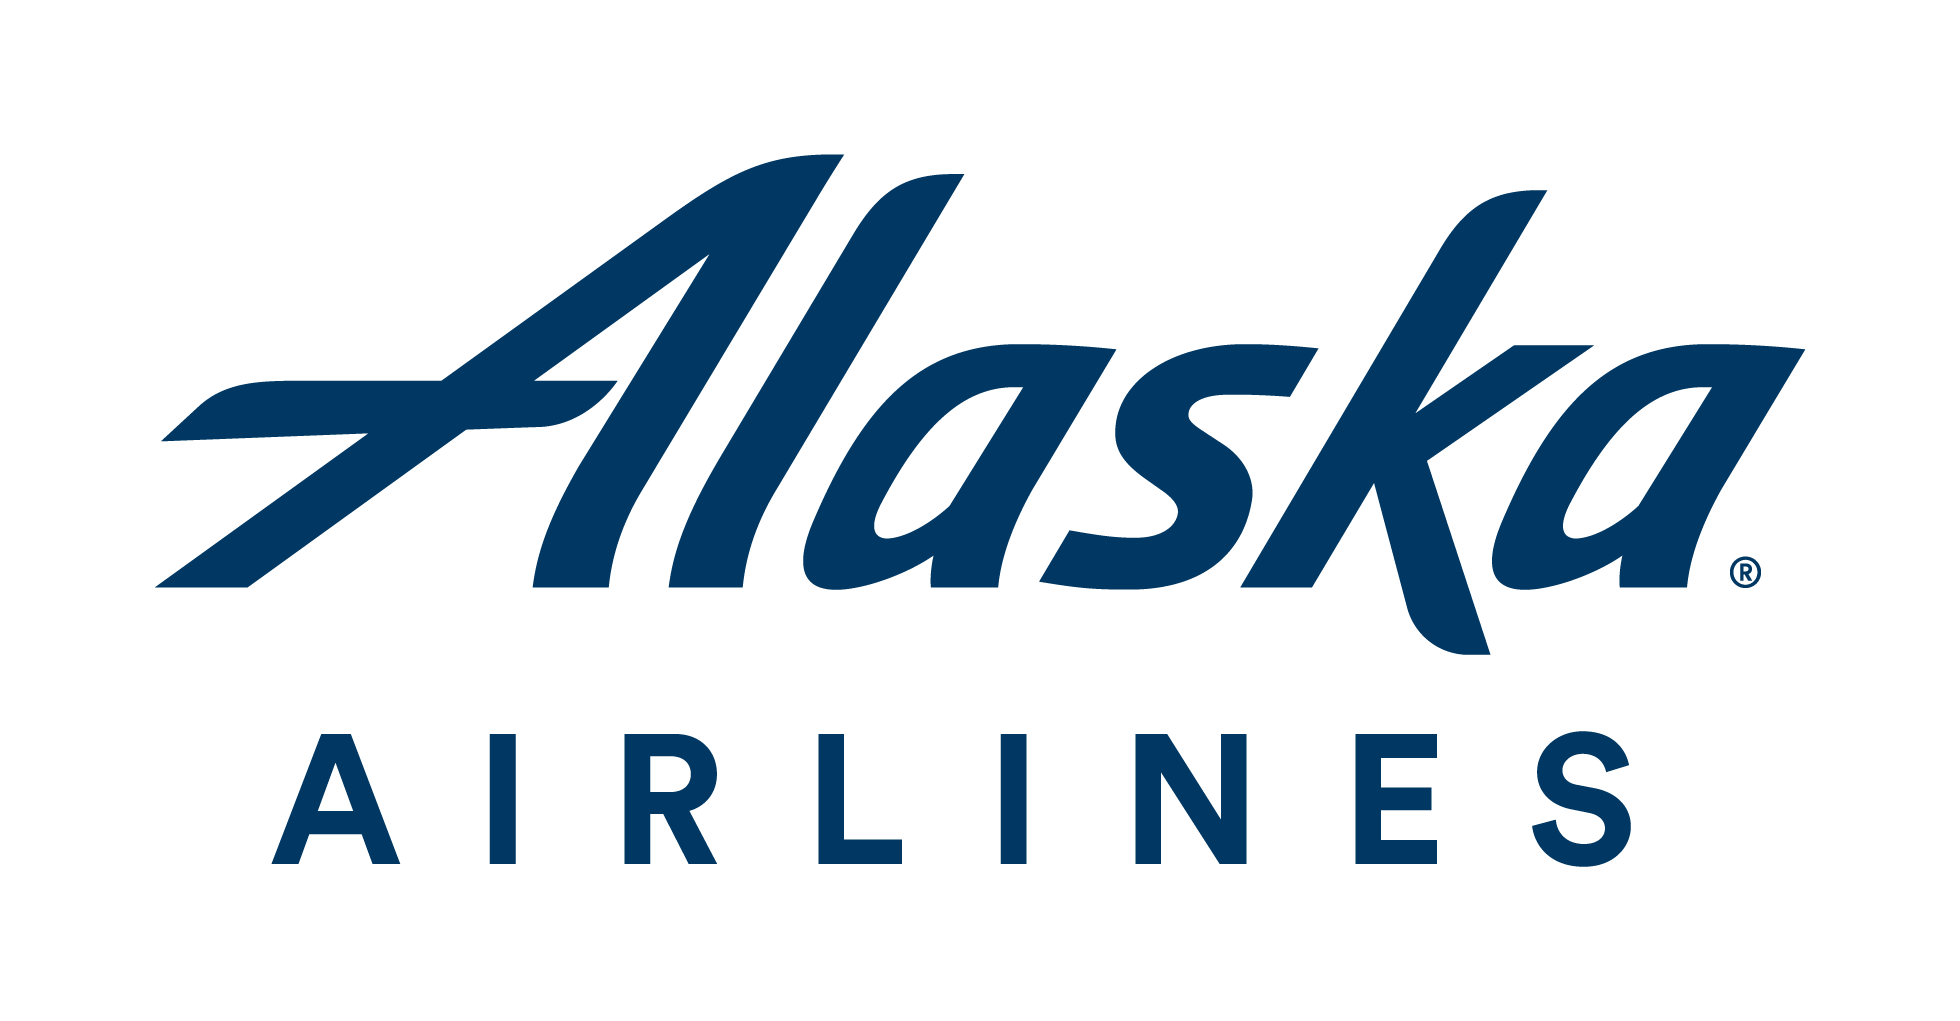 Image result for alaska airlines logo png